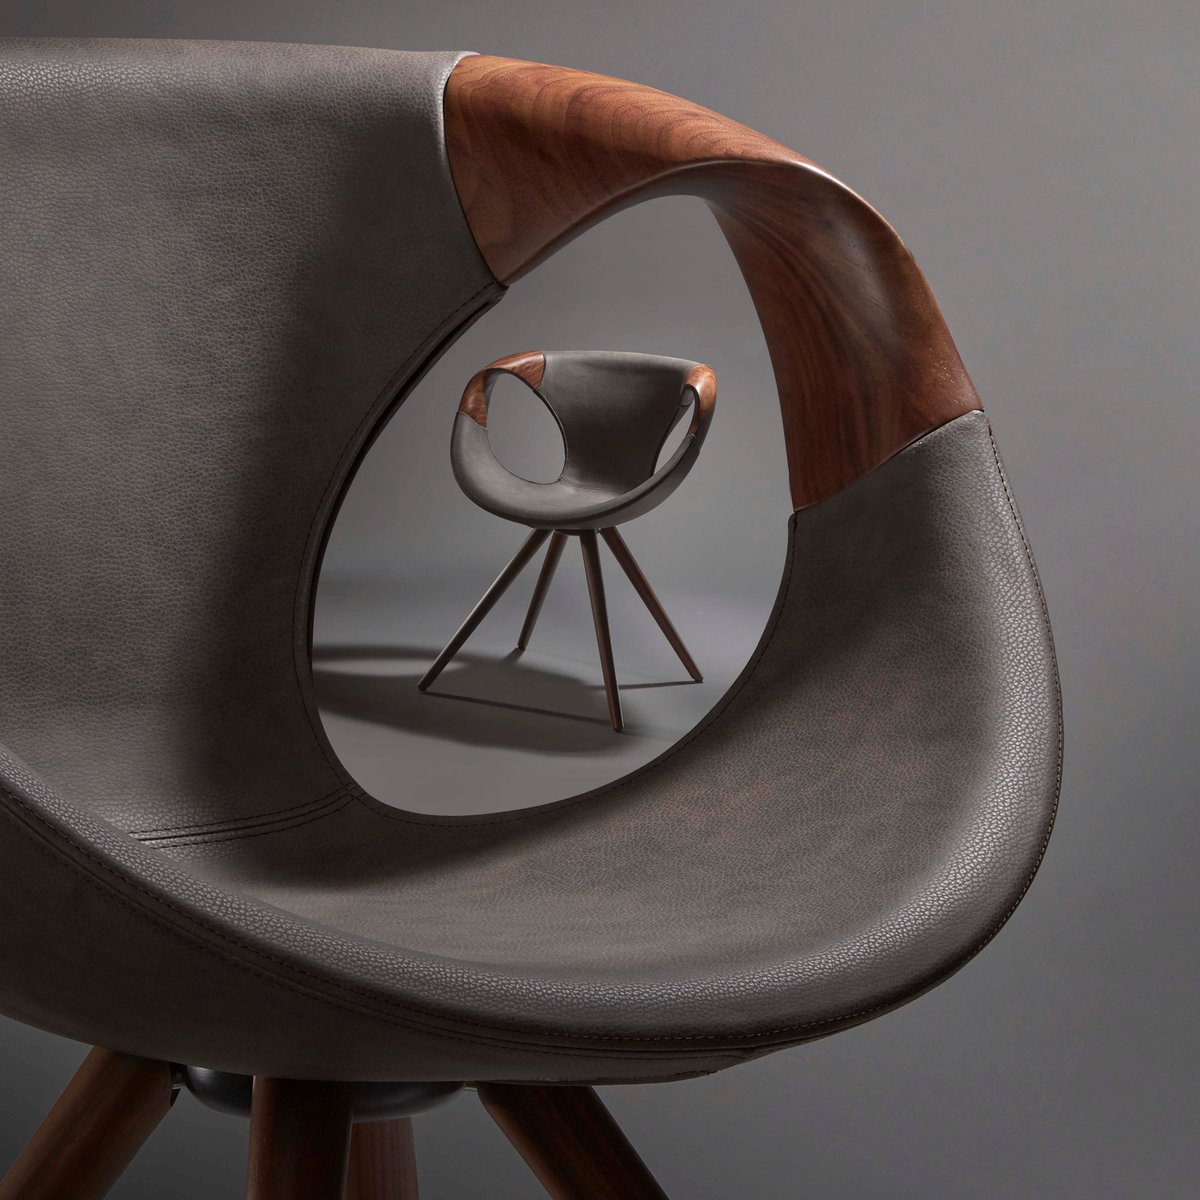 The Sur Dining Chair from @cliffyoungltd is 1 example of pieces blurring residential/hospitality design boundaries https://t.co/14hxkAxlZj